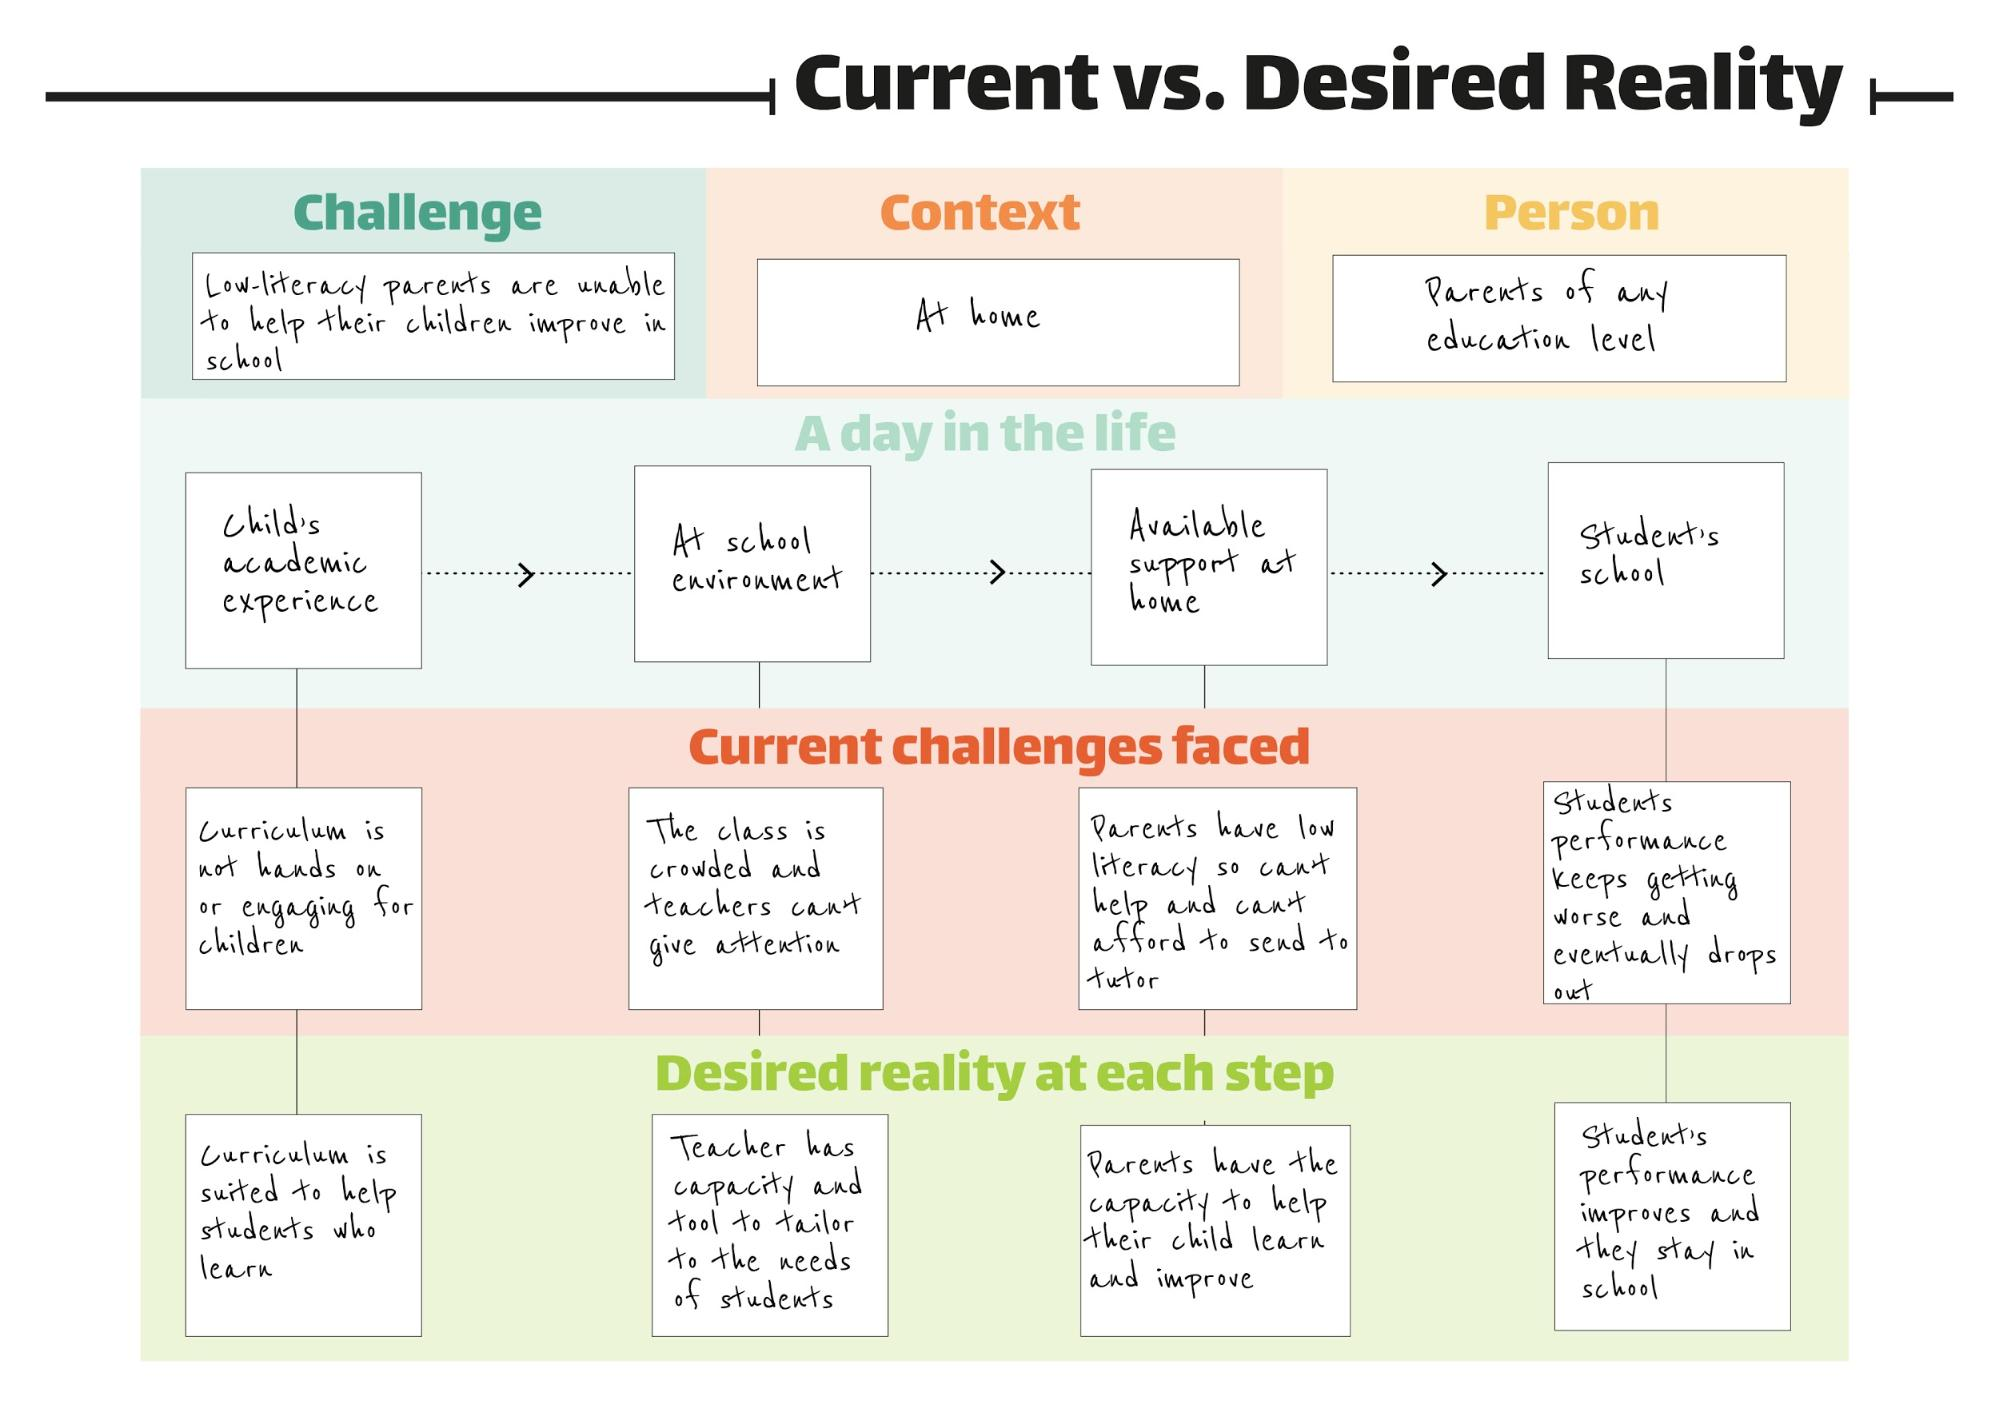 Current reality vs. desired reality image